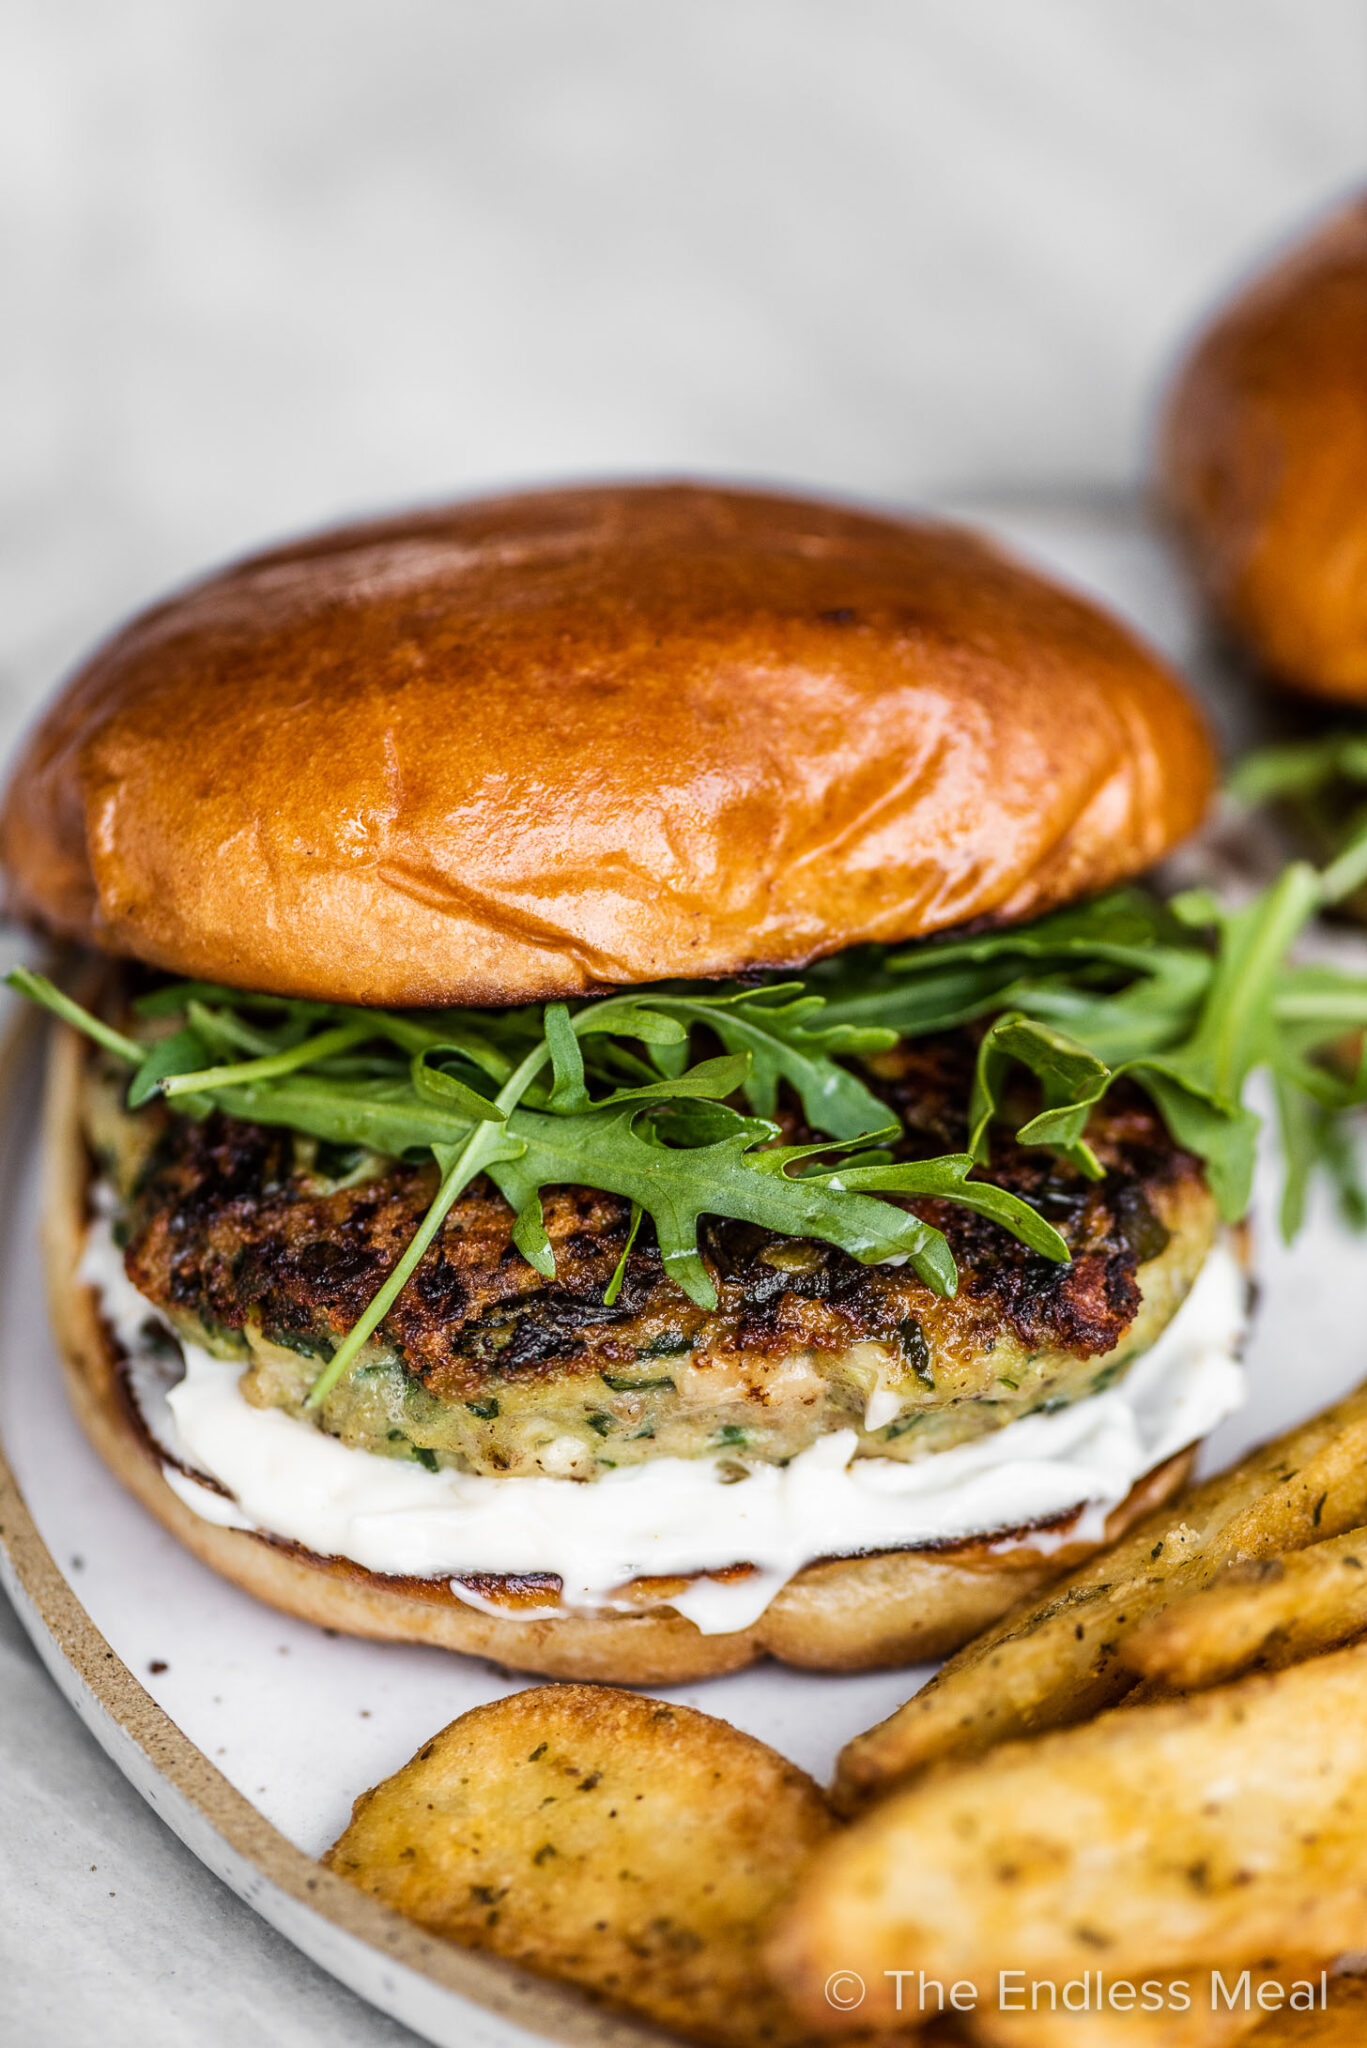 A chicken feta spinach burger on a white plate with fries.